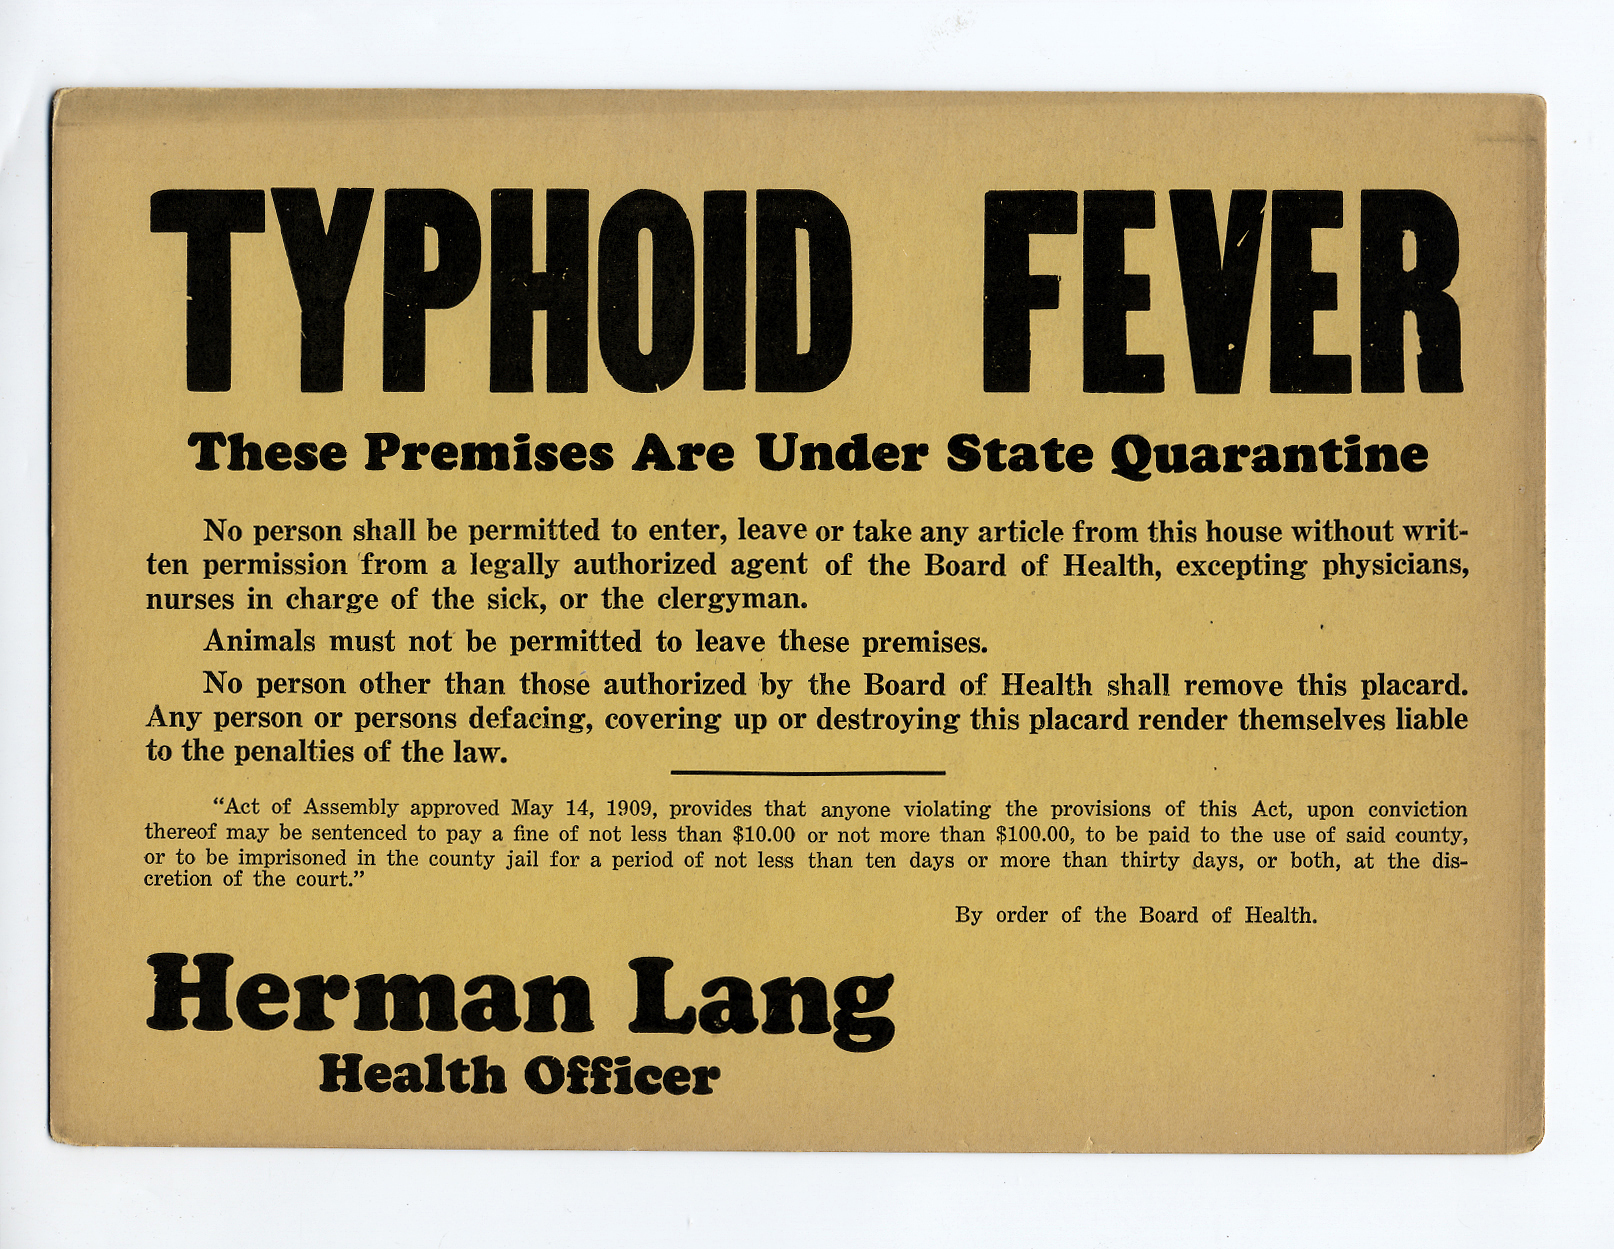 Typhoid fever quarantine sign, State of Pennsylvania, ca 1930s.